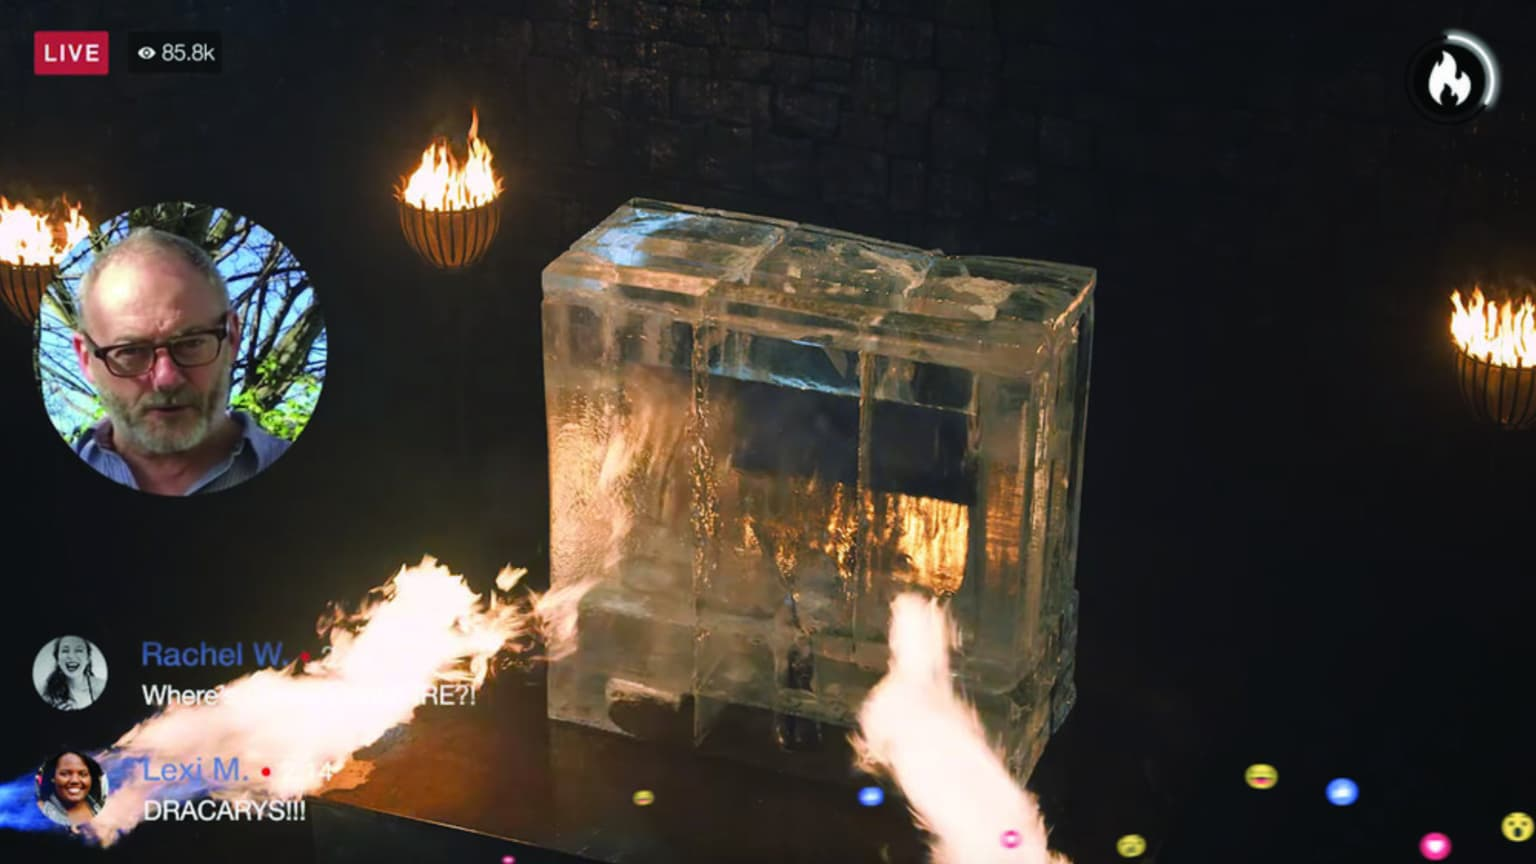 Game of Thrones Ice + Fire FB Live